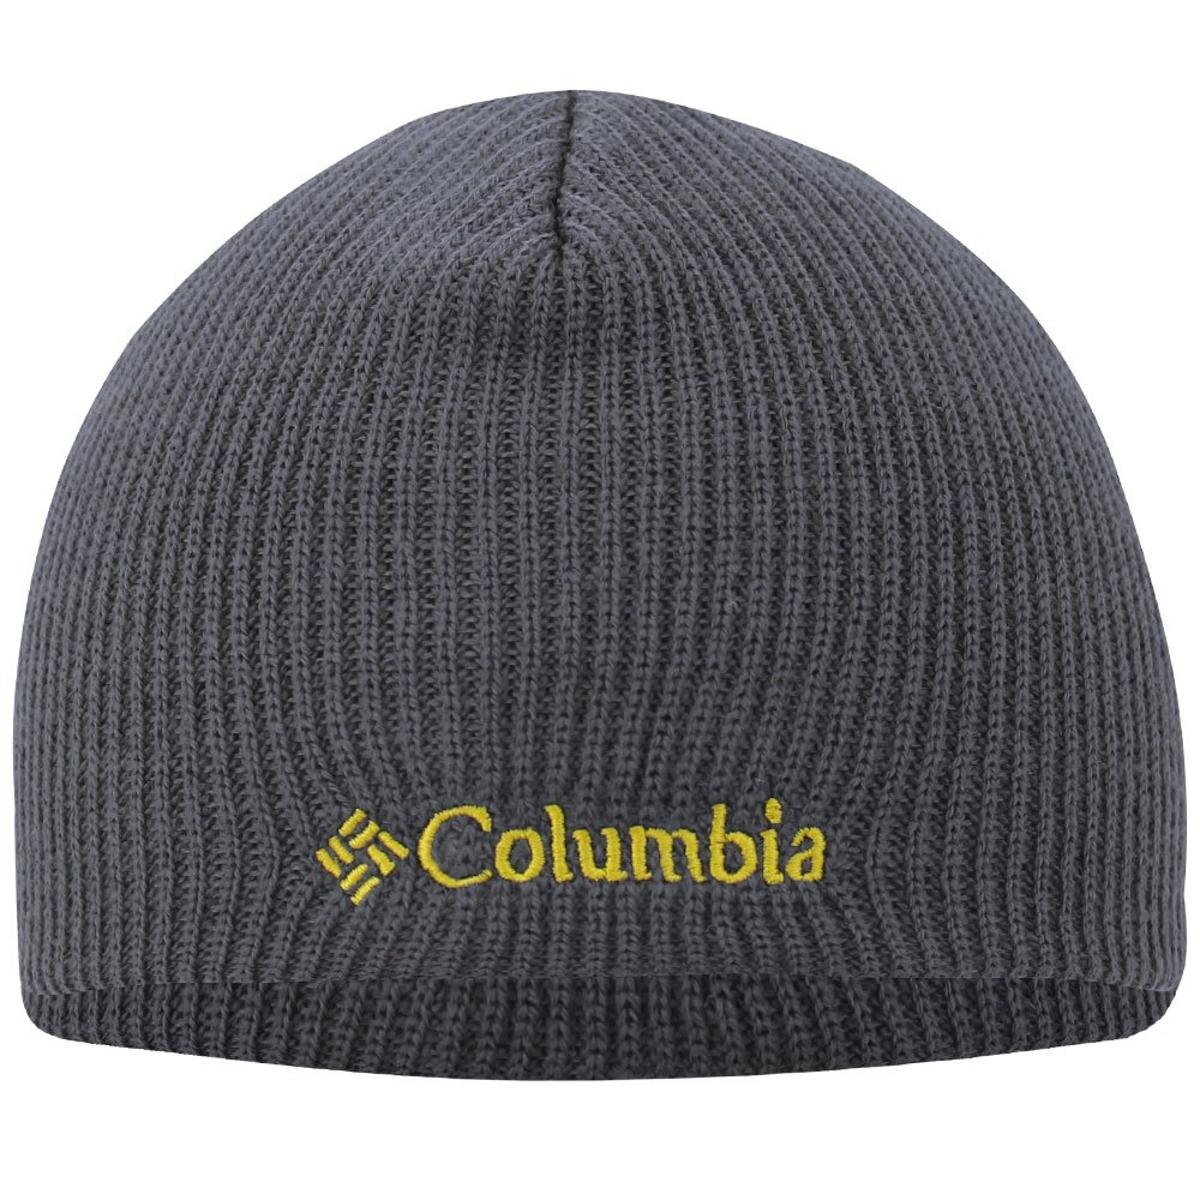 Gorro Columbia Youth Whirlibird Watch Cap - Cinza - Compre Agora ... 4ca043962d0